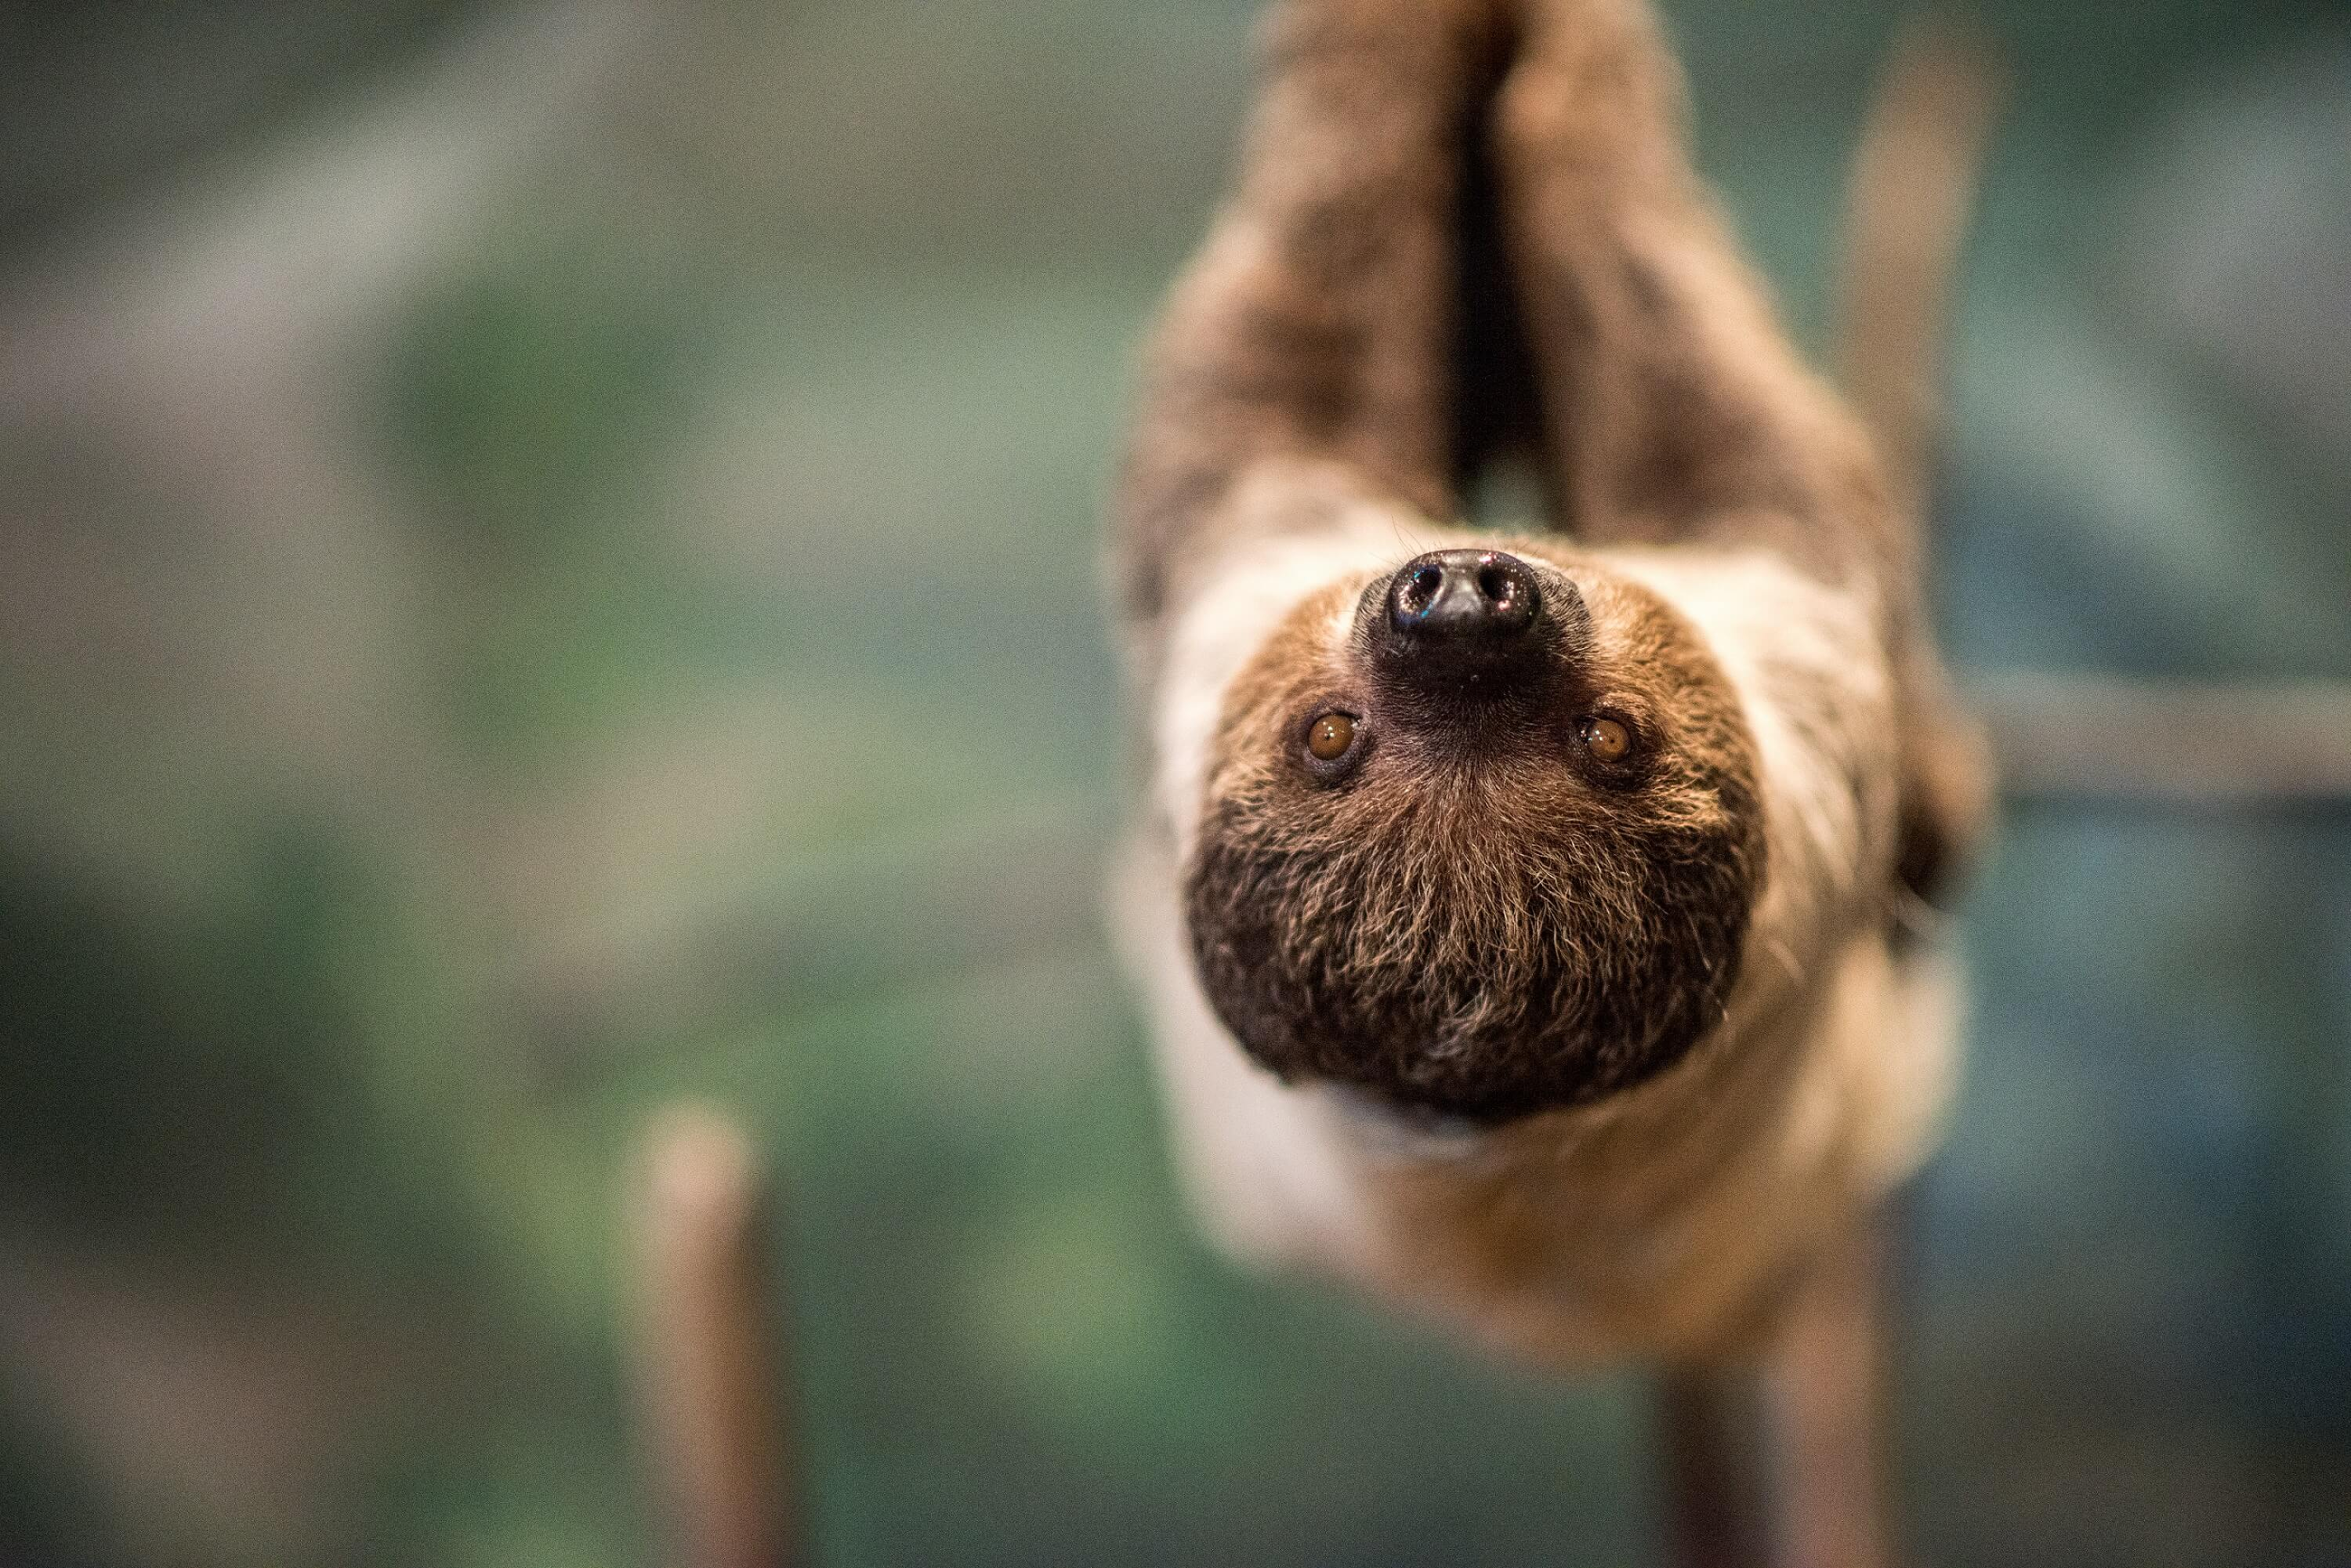 National Aviary Sloth